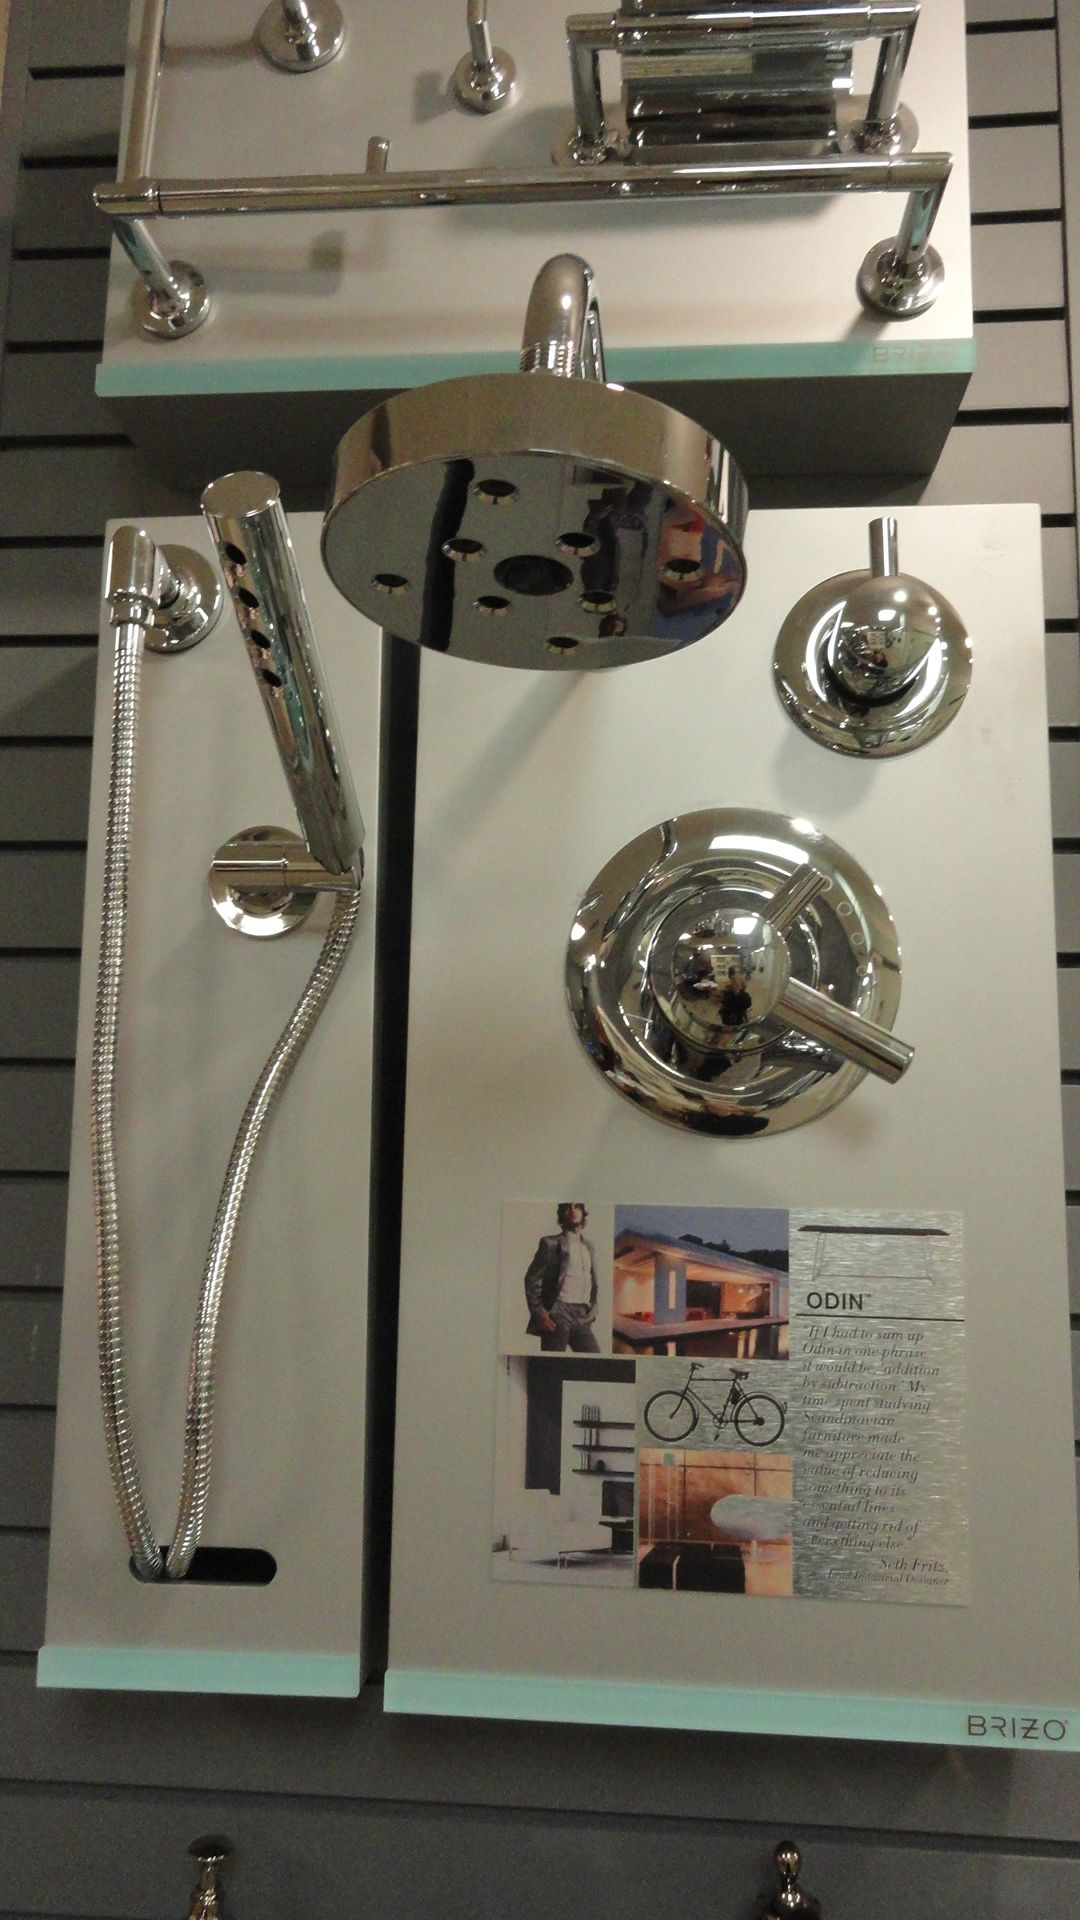 Brizo Faucets, Showers, Bathroom Faucets and Accessories ...